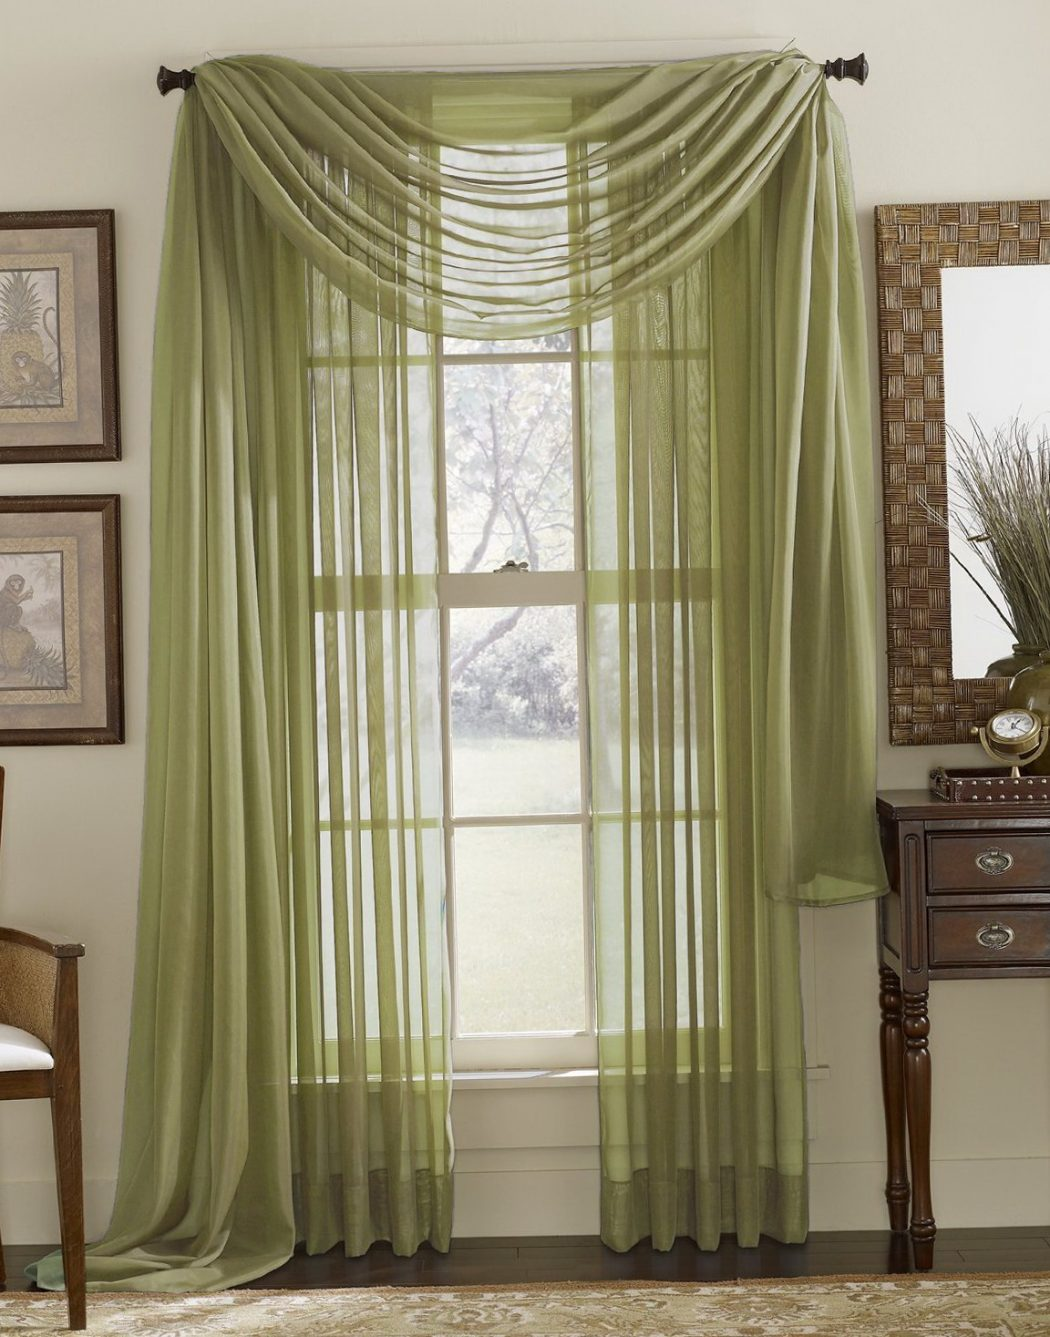 Lovely-Green-Sheer-Curtains-97-In-with-Green-Sheer-Curtains 20+ Hottest Curtain Designs for 2019